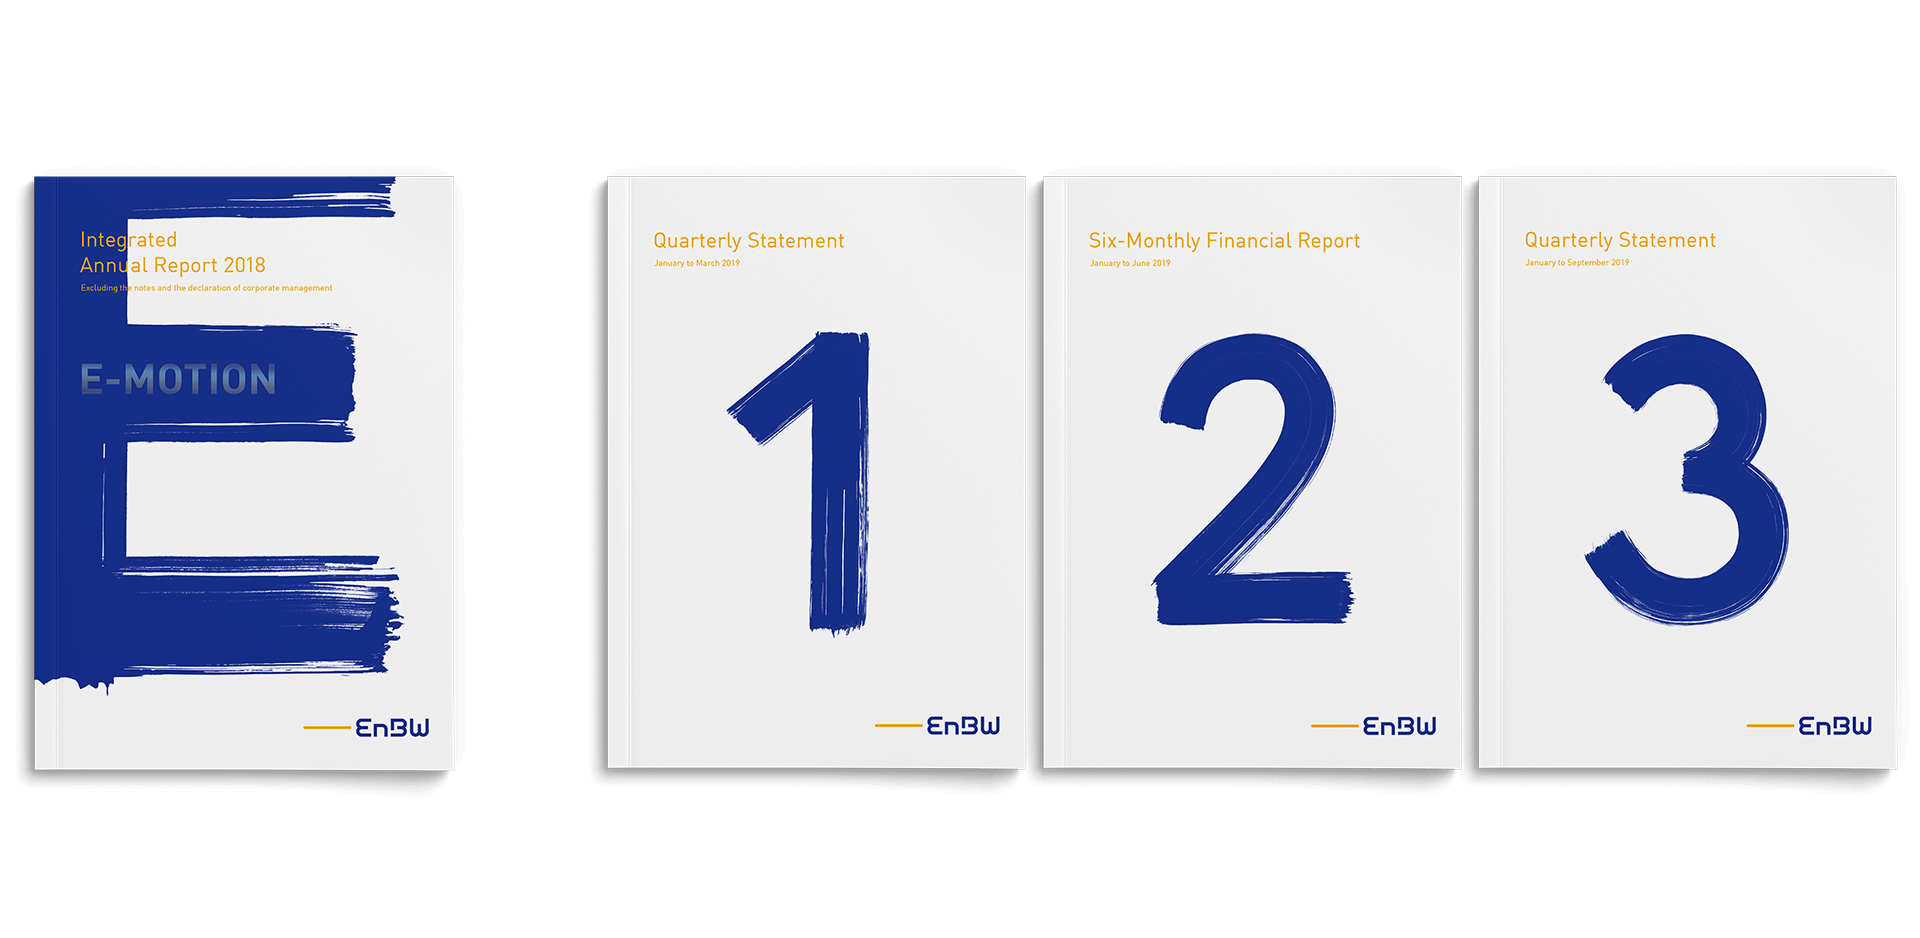 EnBW annual report 2018 all covers